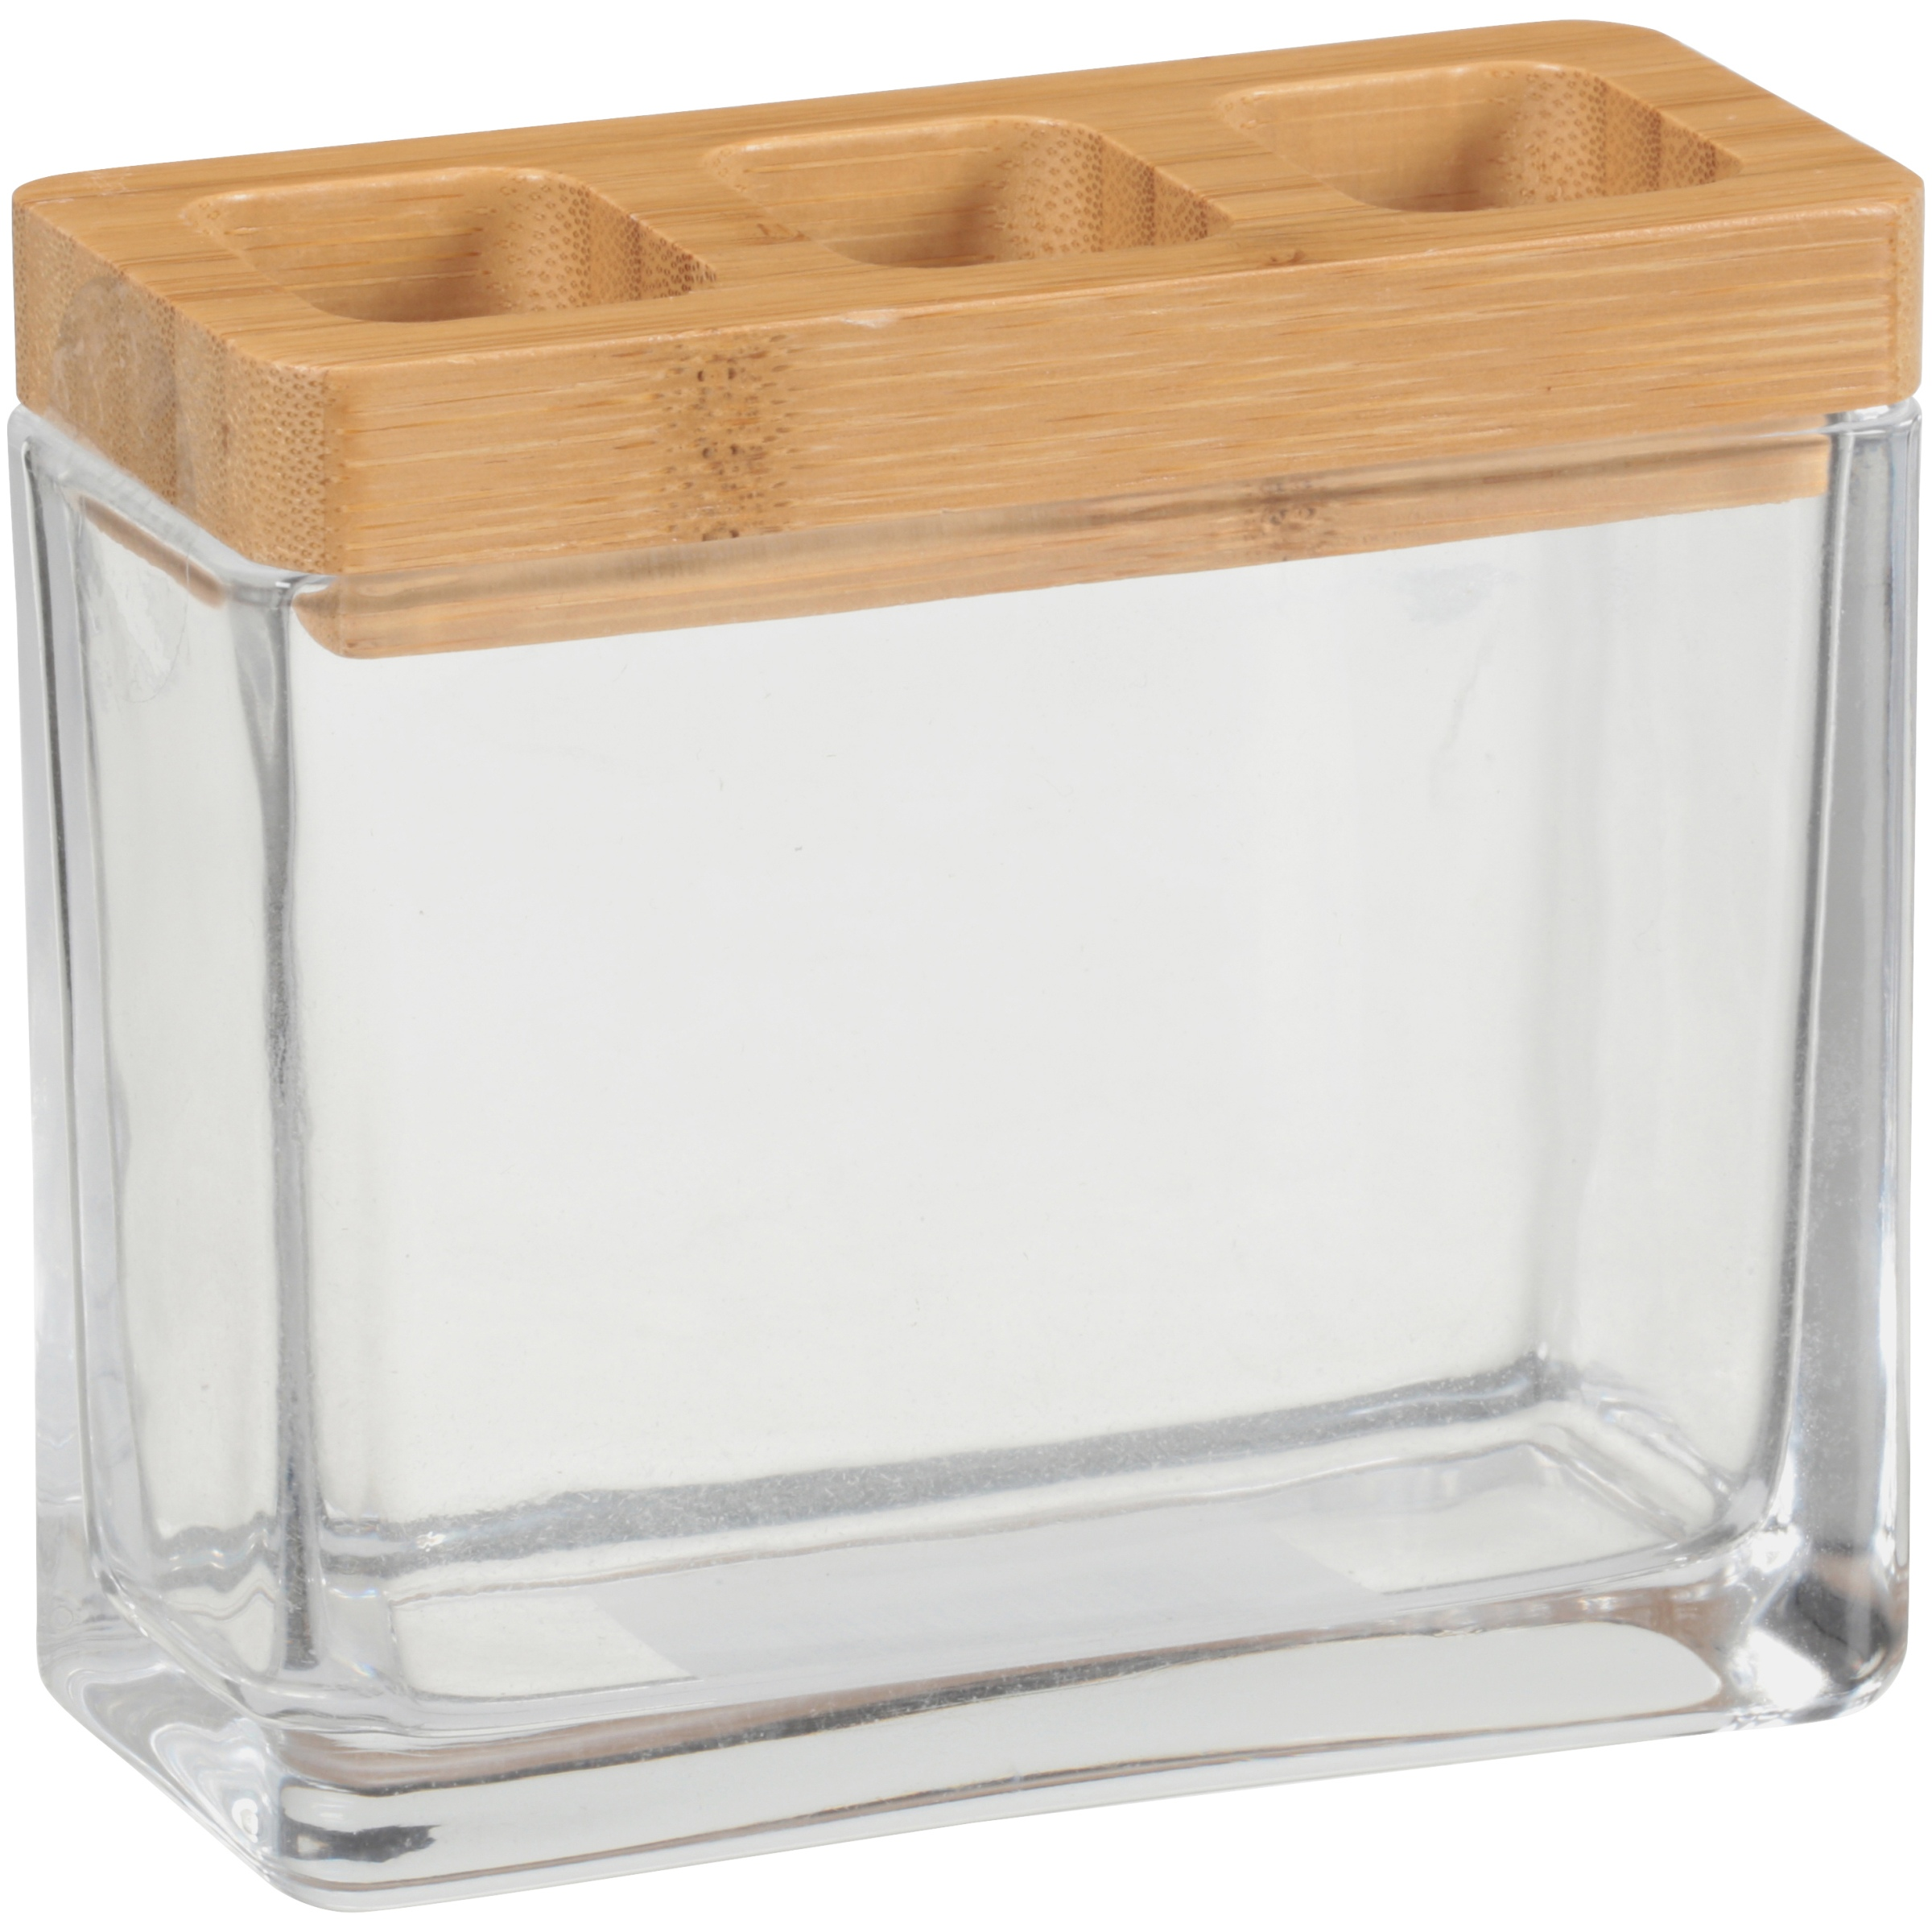 Better Home and Gardens Bamboo Toothbrush Holder by Wal-Mart Stores, Inc.